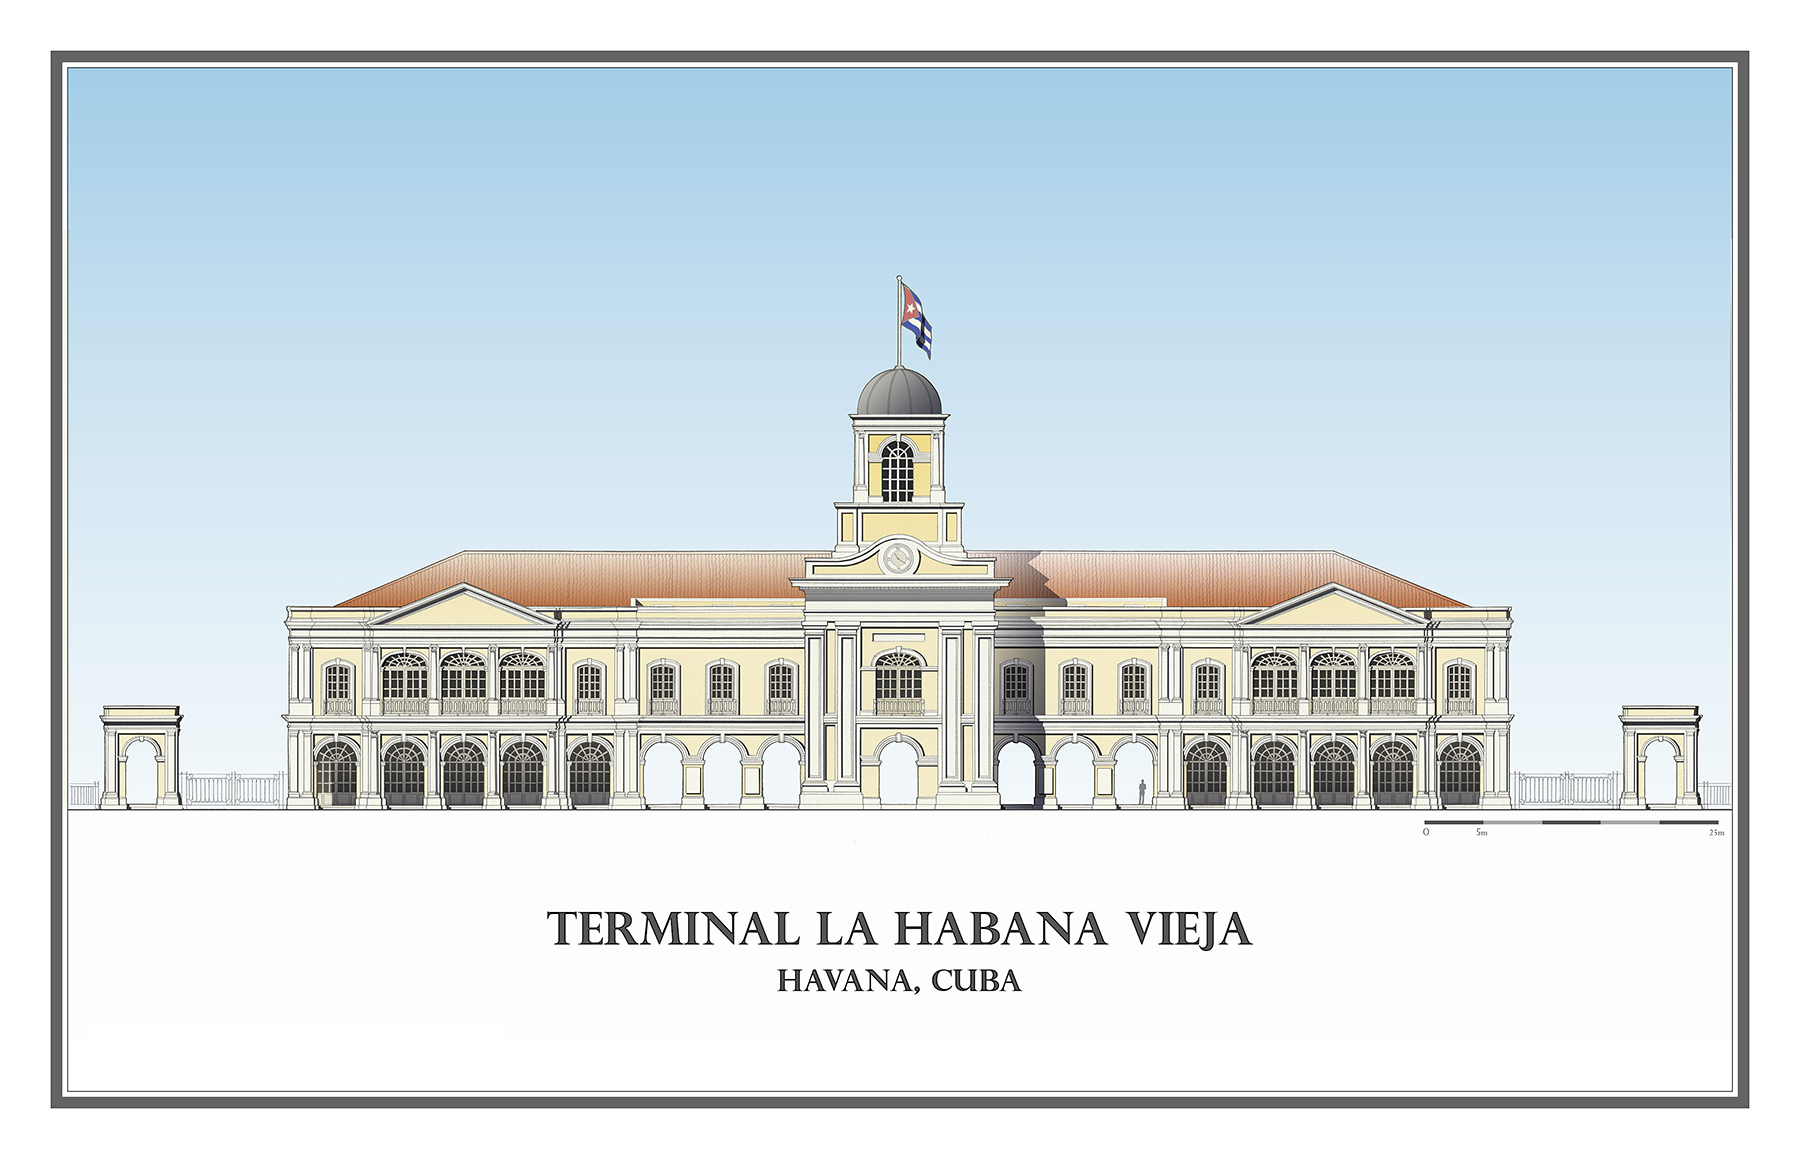 Proposed Terminal La Habana Vieja